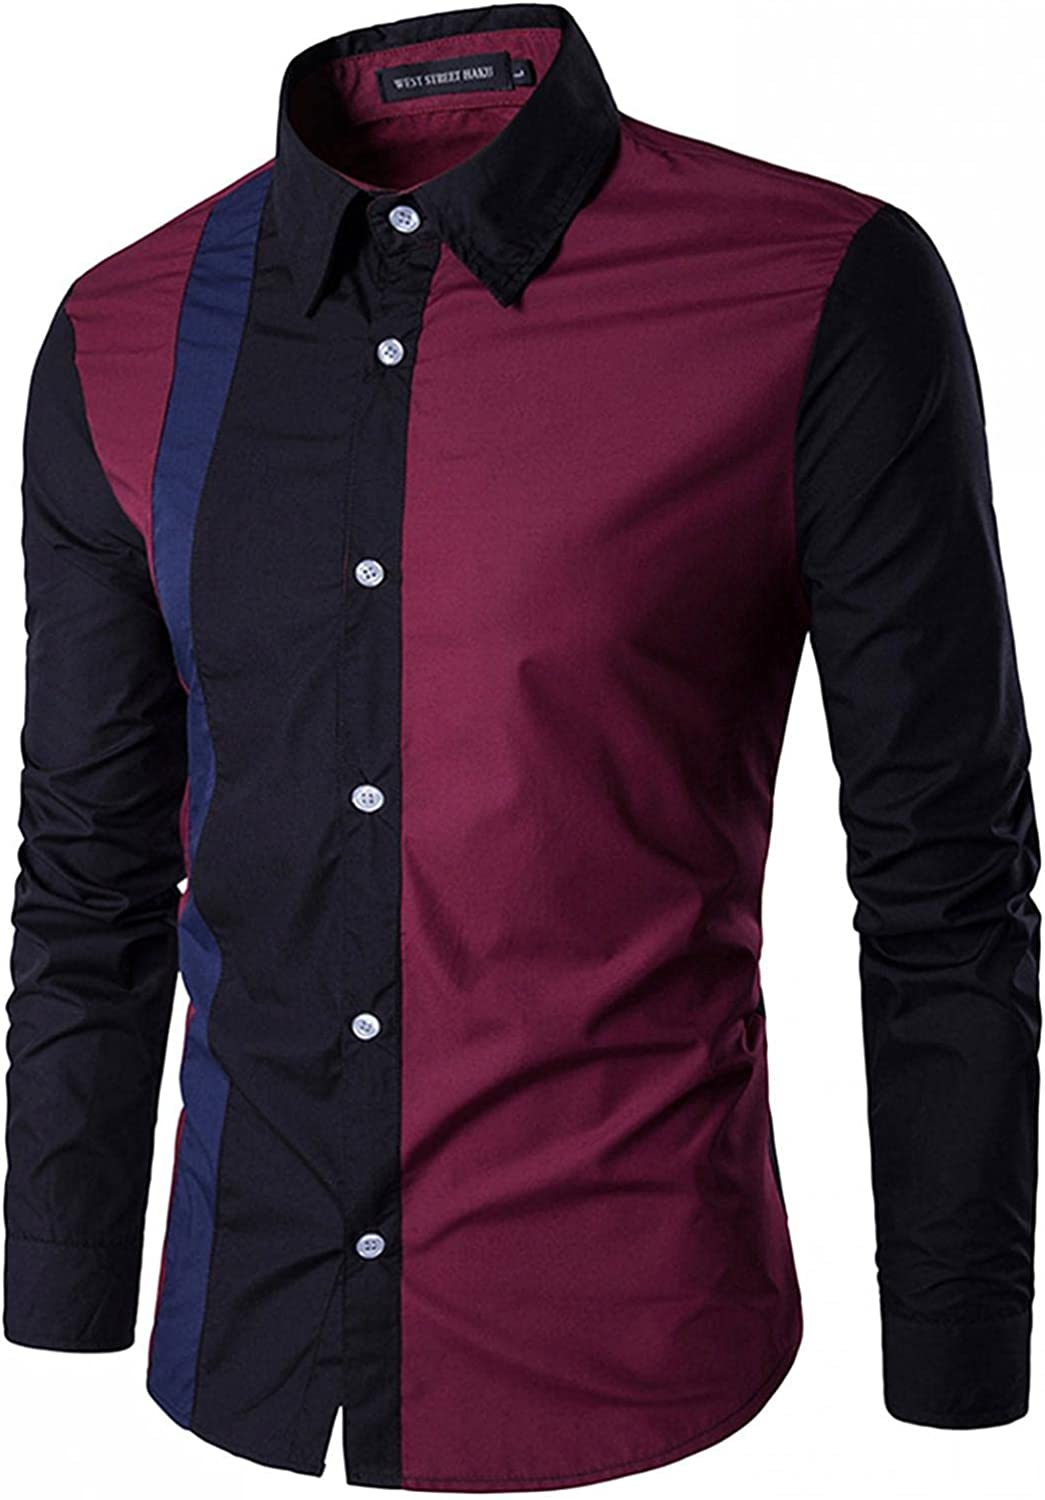 Mens Fashion Regular Fit Long Sleeve Color Block Dress Shirts Casual Button Down Shirts Tops for Mens